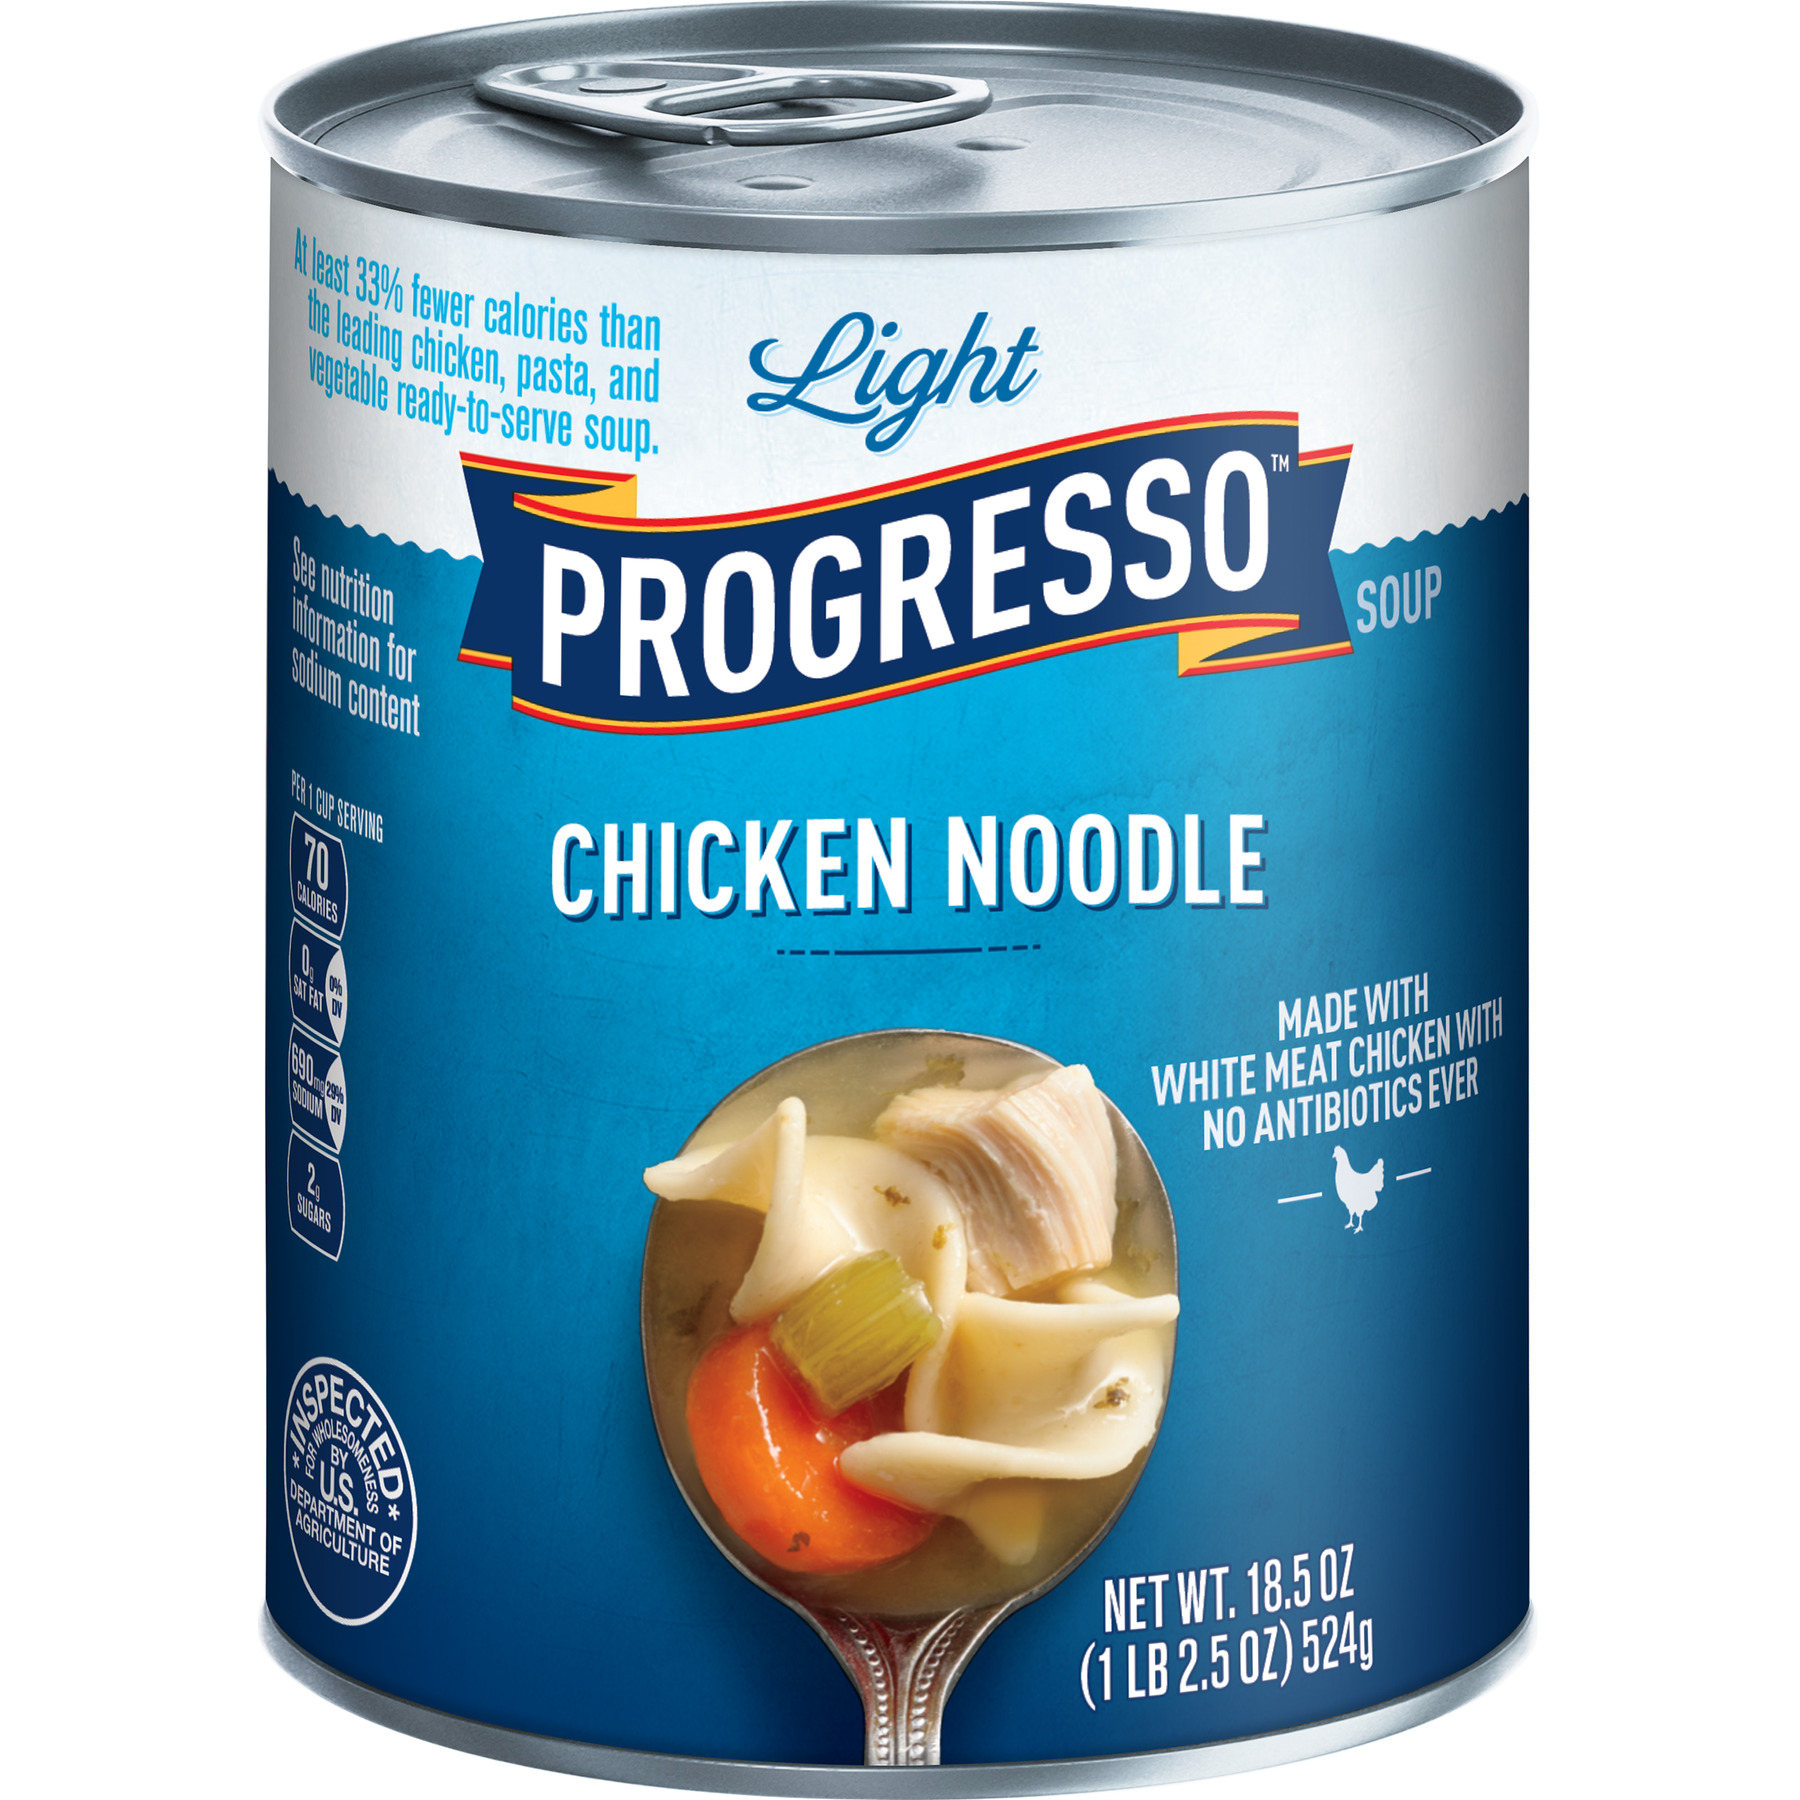 Progresso Soup, Low Fat Light, Chicken Noodle Soup, 18.5 oz Can